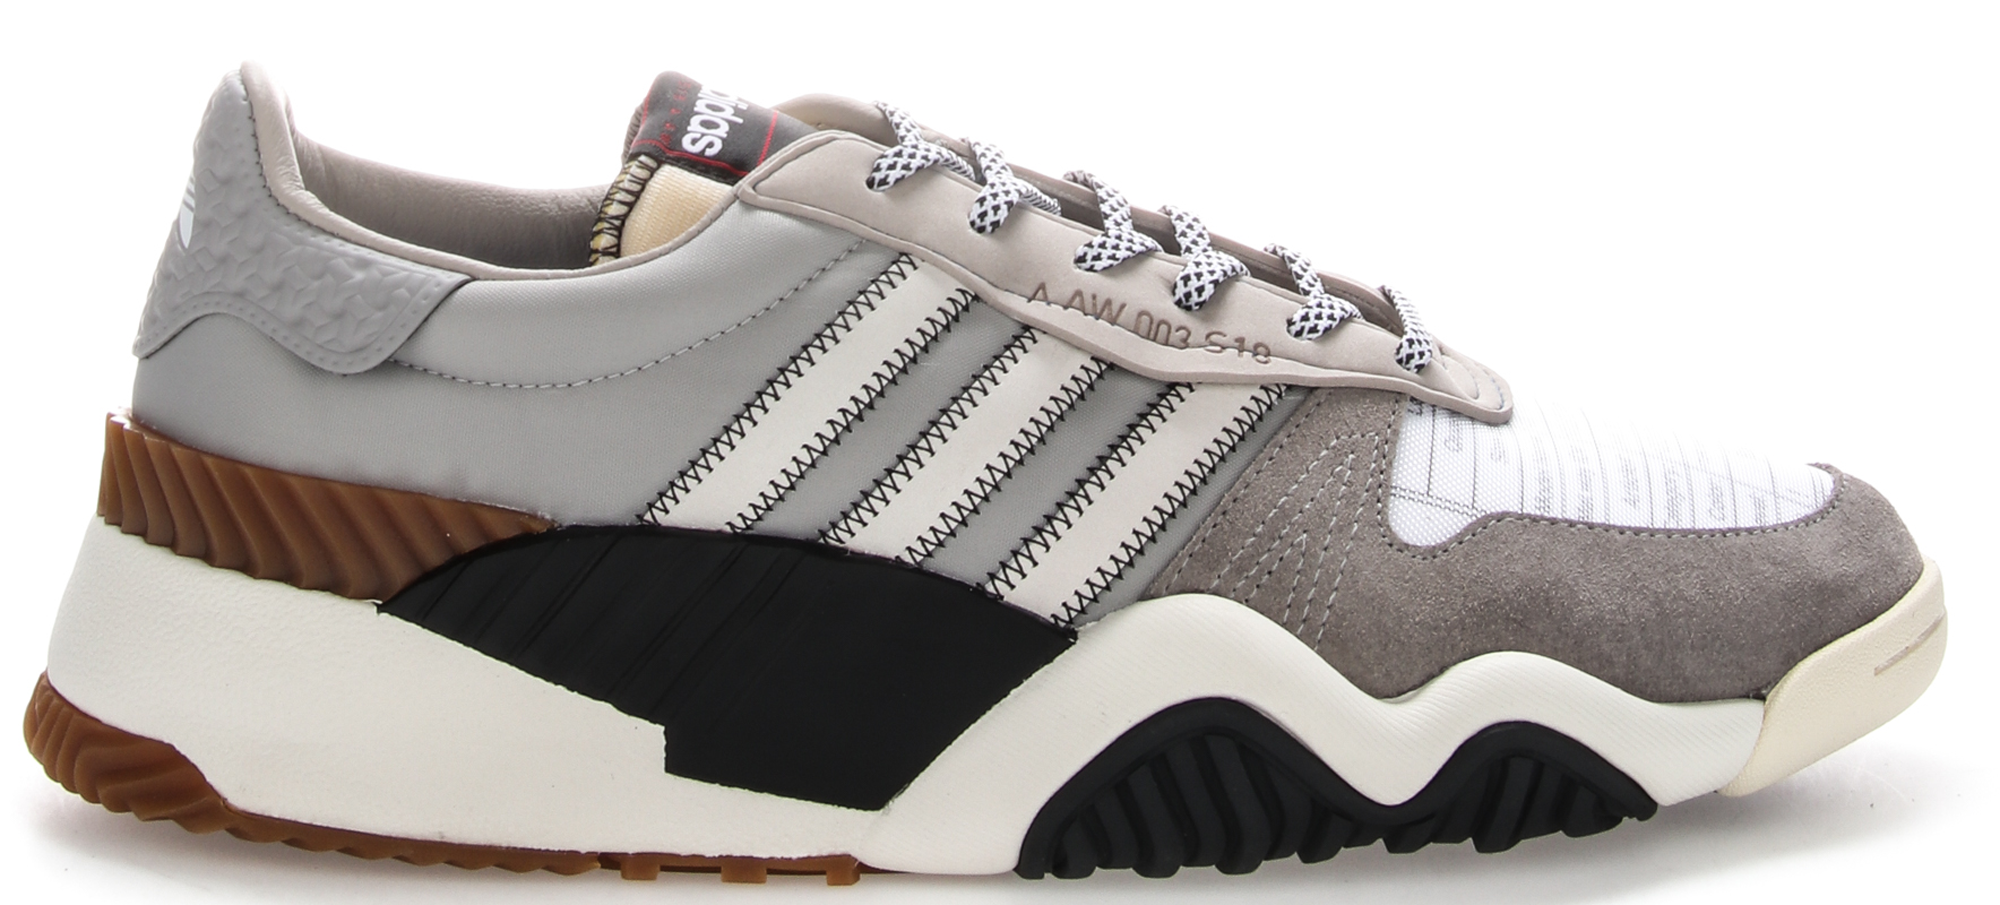 adidas Turnout Trainer Alexander Wang Light Brown